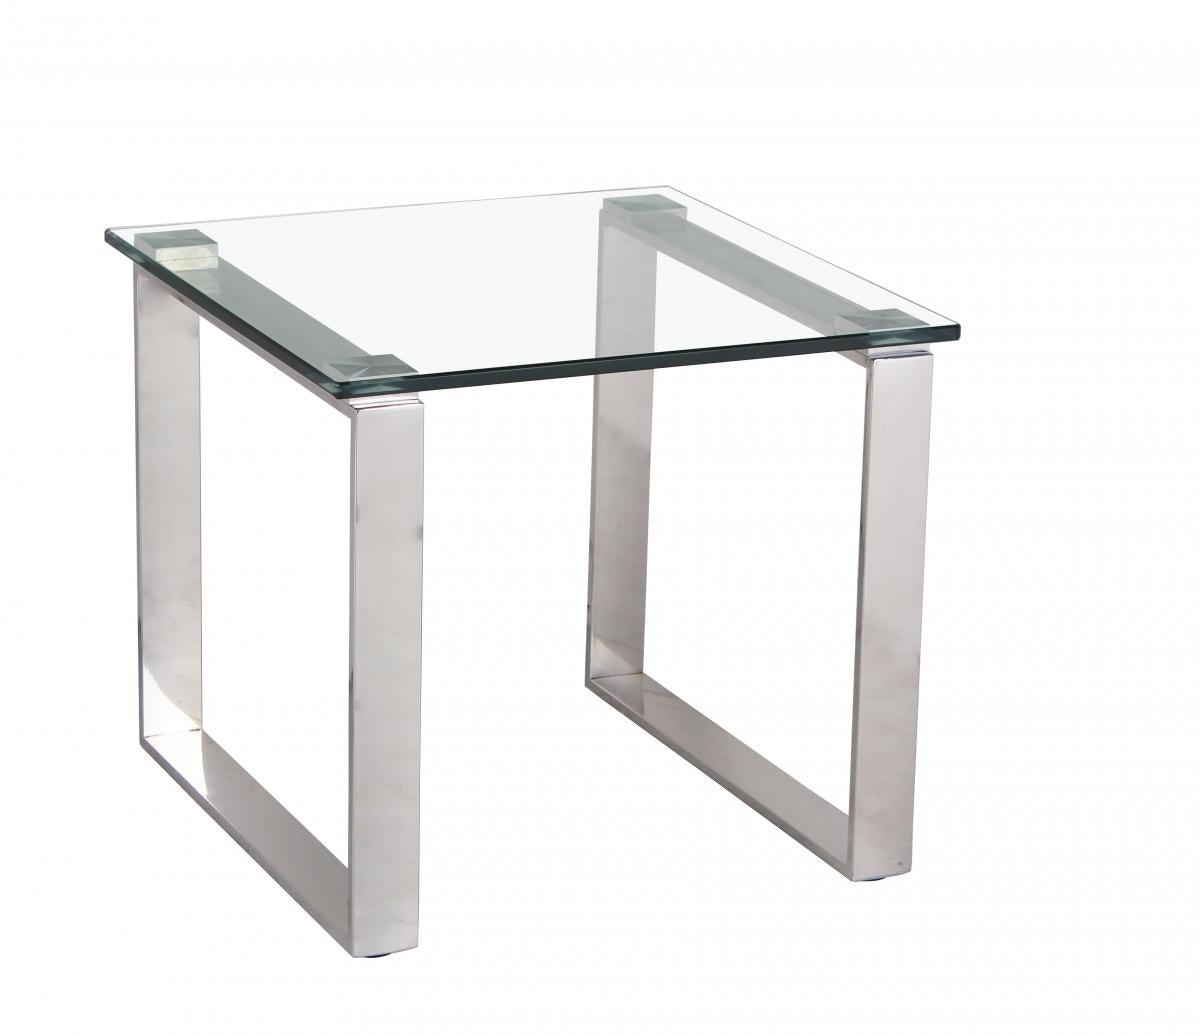 Carter Glass Lamp Table with Stainless Steel Legs